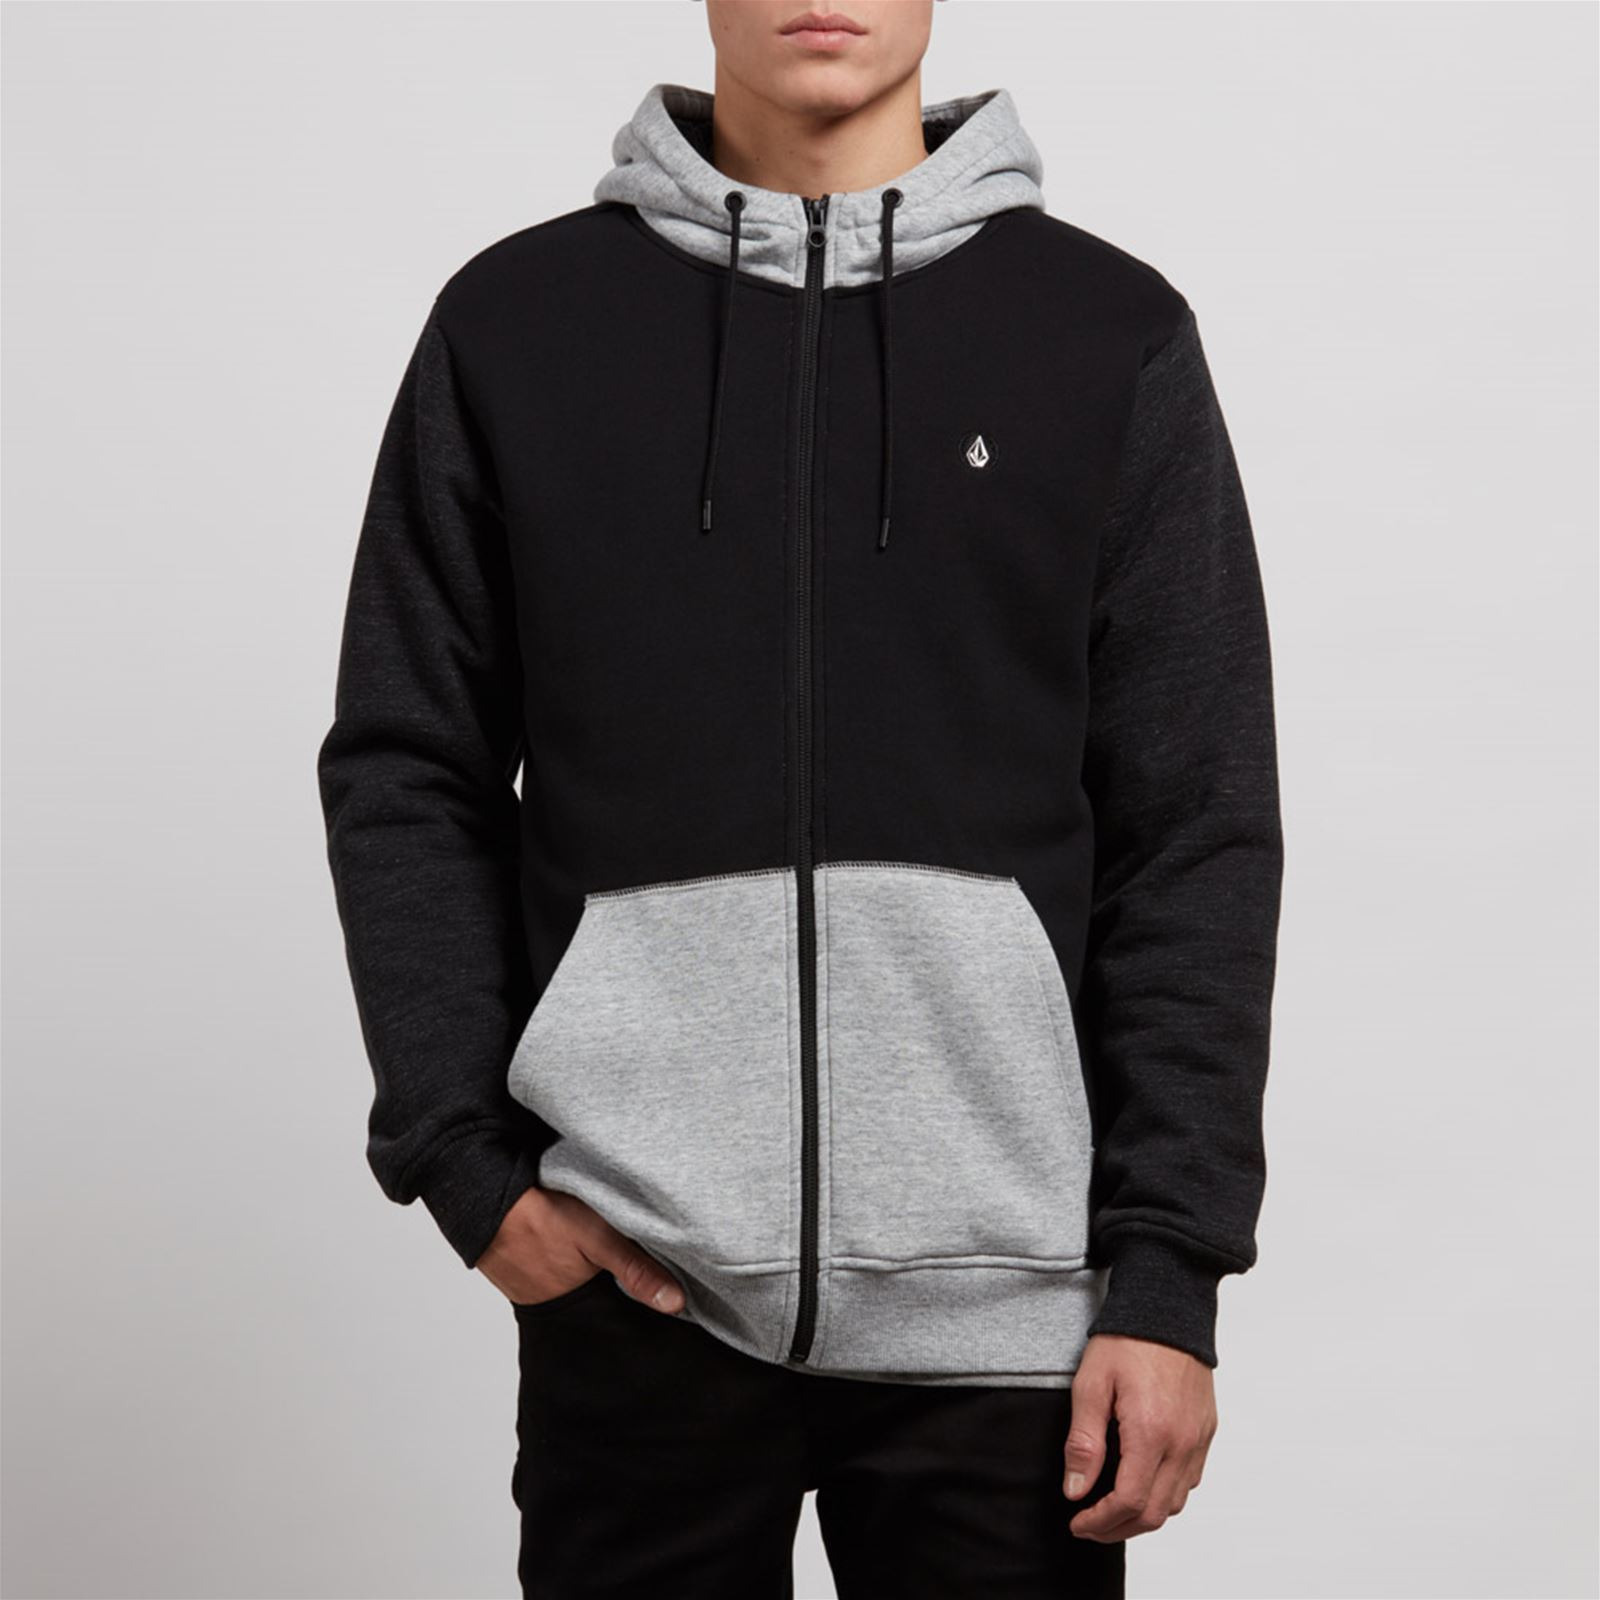 Capuche Noir Stn Homme Sngl a V Lined ZipSweat Volcom EDIYHW92